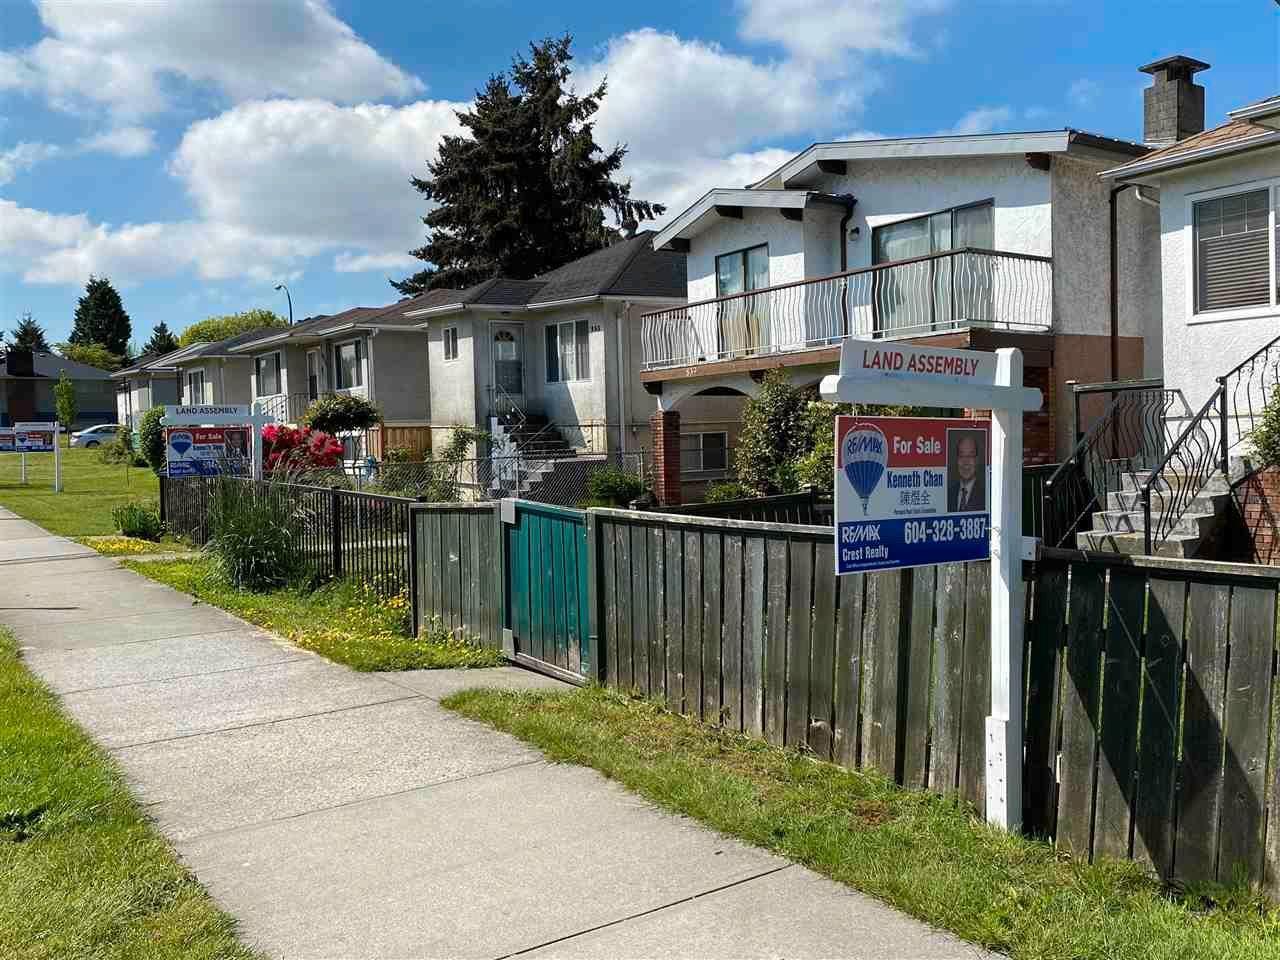 Photo 6: Photos: 875 NANAIMO Street in Vancouver: Hastings House for sale (Vancouver East)  : MLS®# R2567915